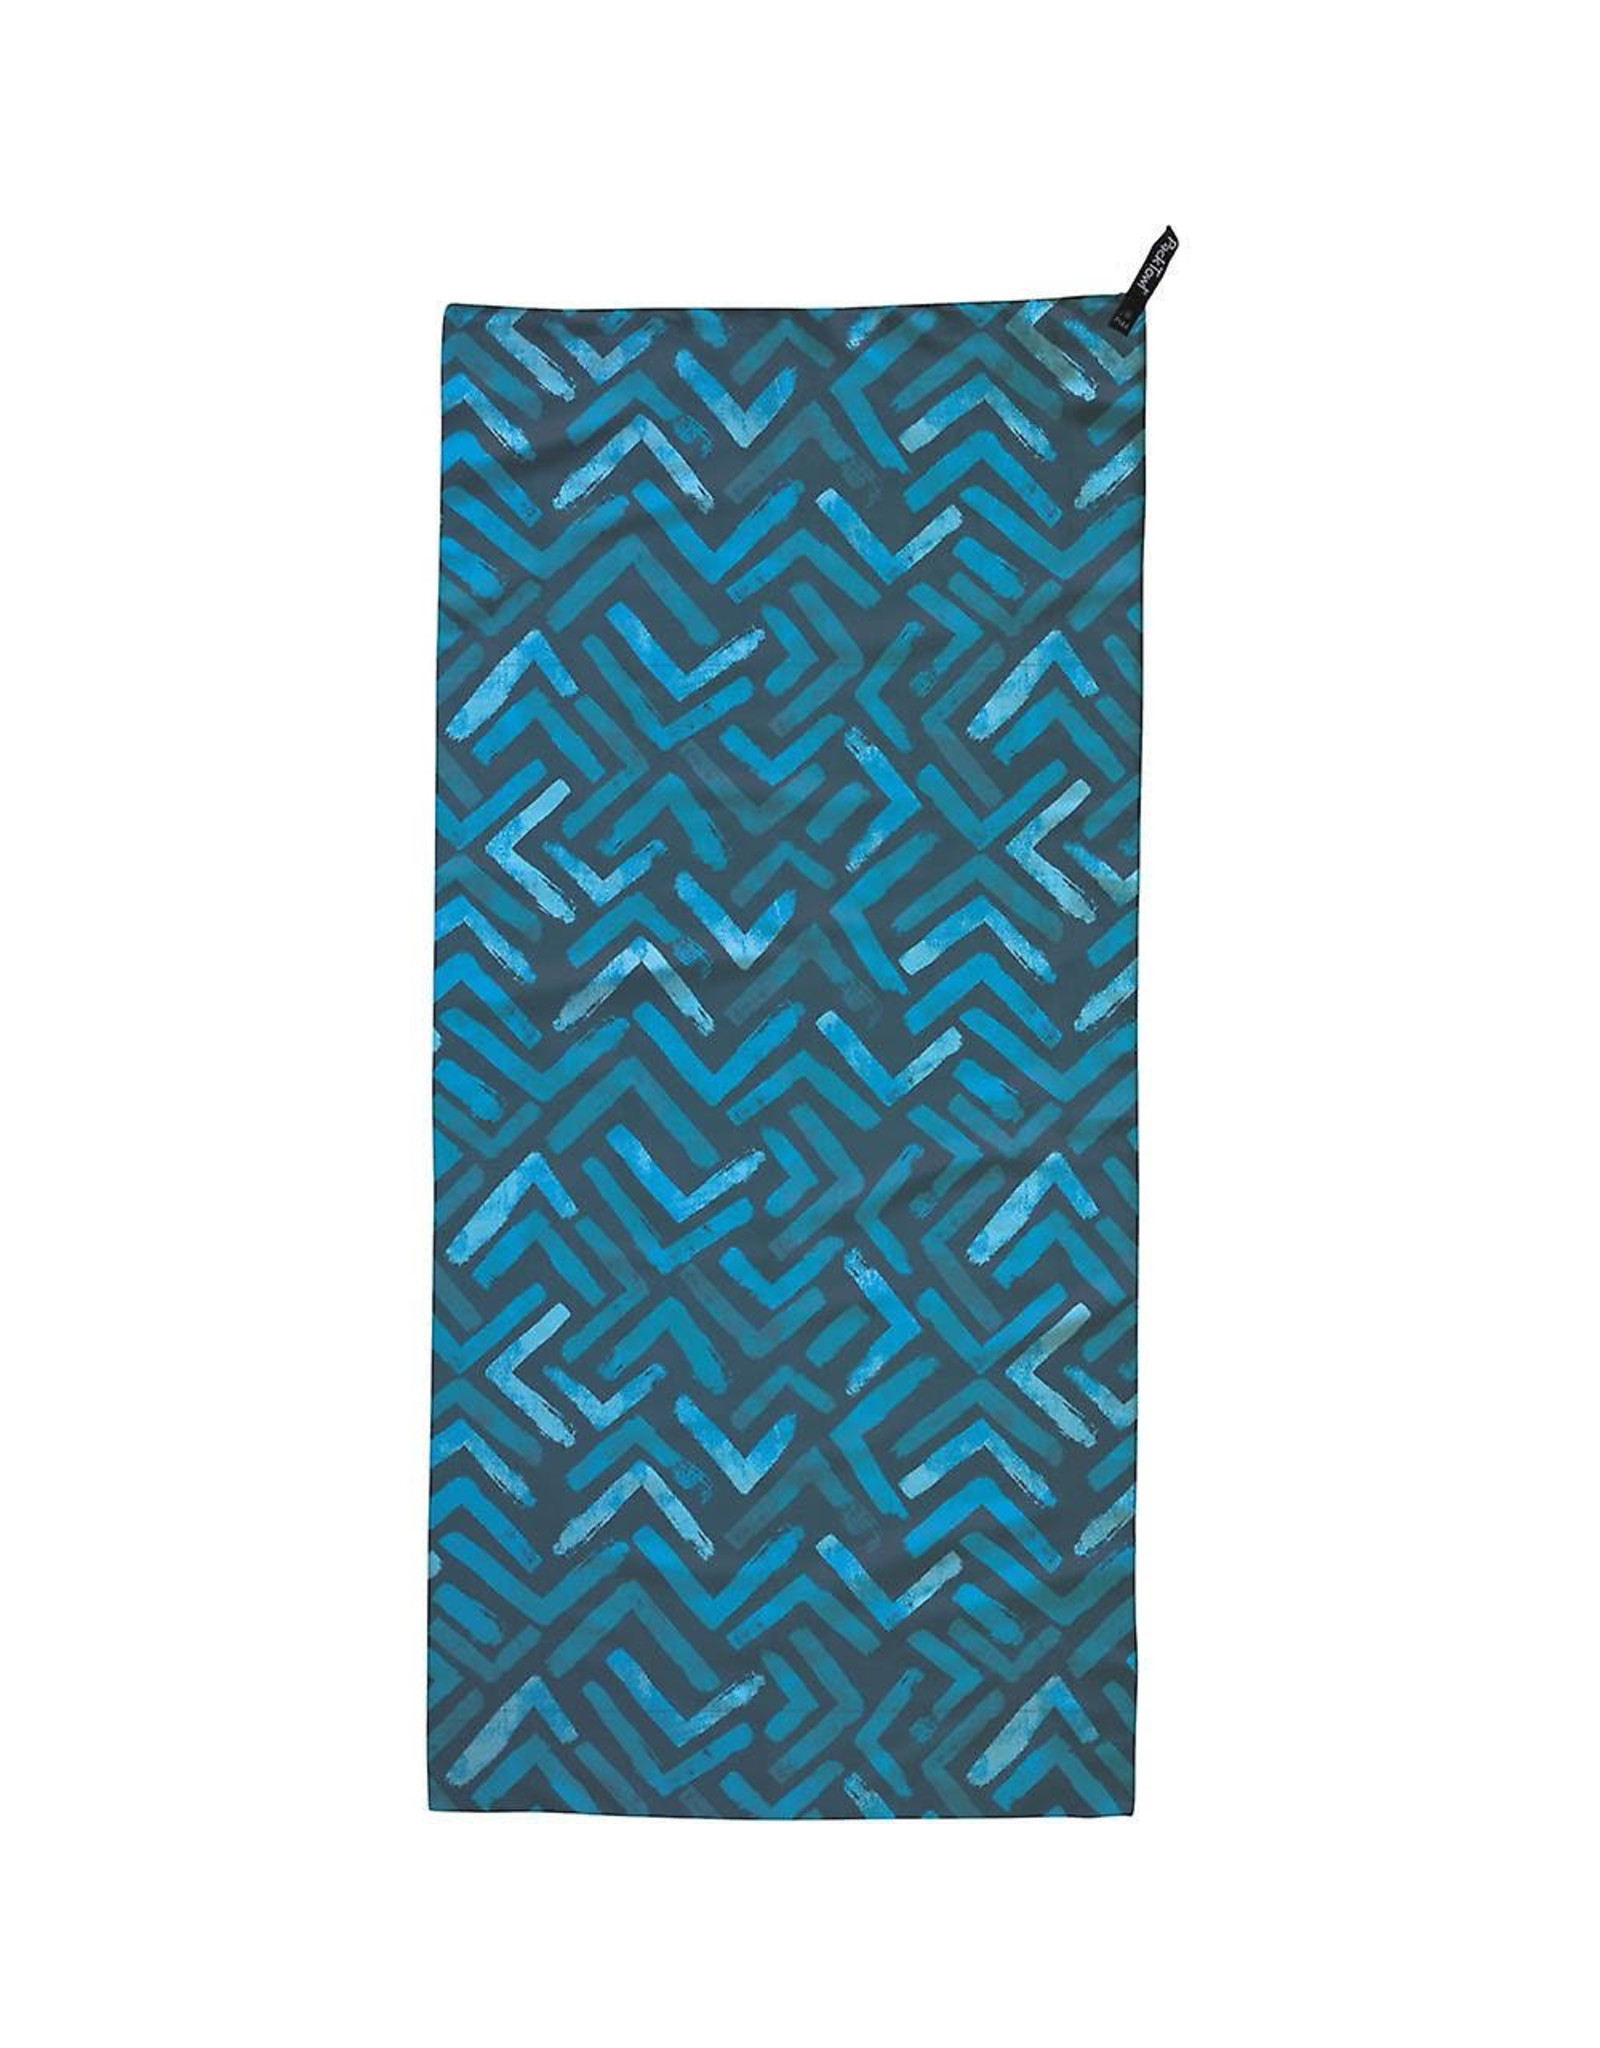 PackTowl PackTowl Ultralite Body Towel Riptide